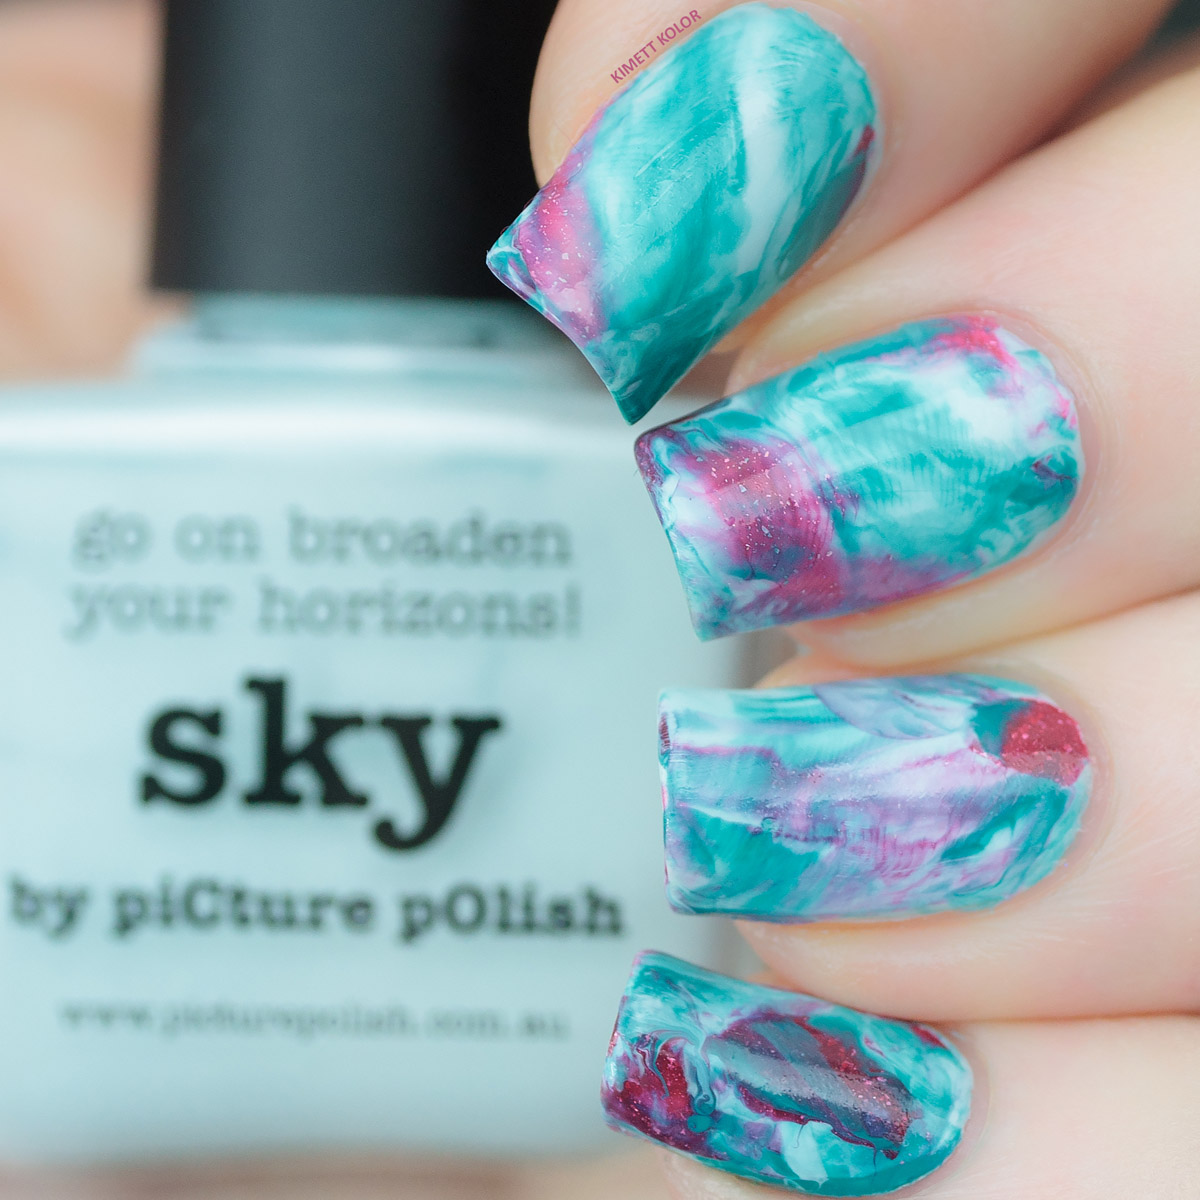 KimettKolor picture polish challenge nail art